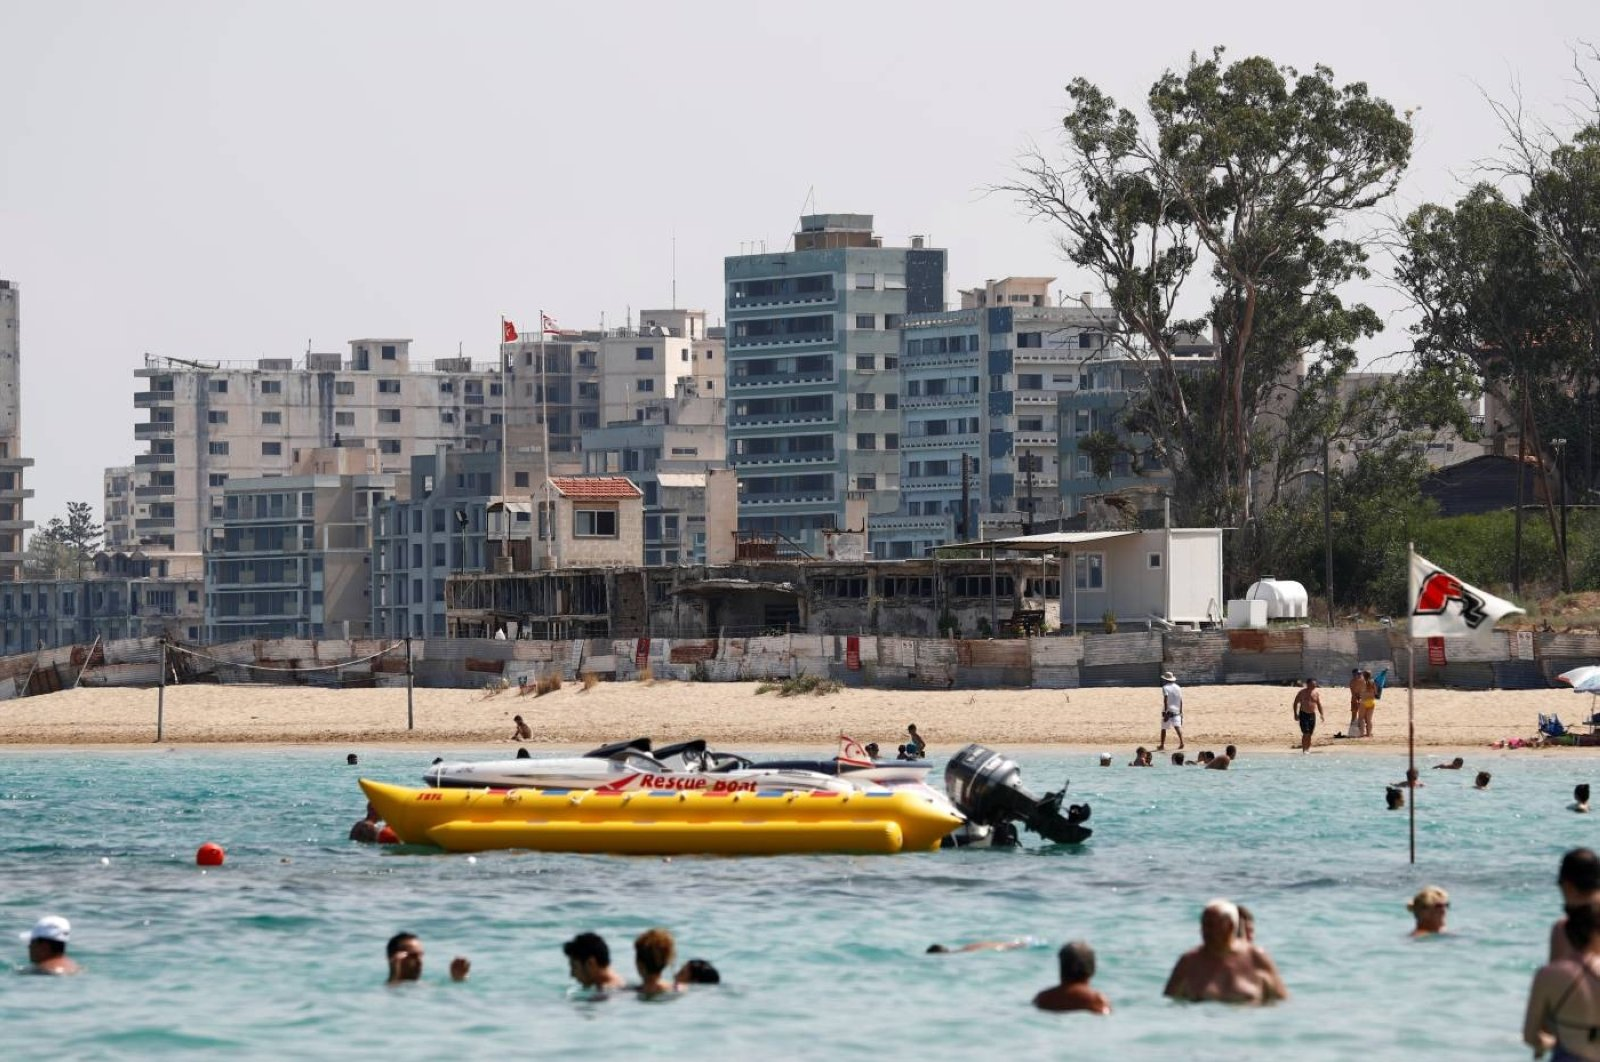 Varosha, an area fenced off since the 1974 division of Cyprus, is seen from a beach in Gazimağosa (Famagusta), Turkish Republic of Northern Cyprus, Aug. 5, 2019. (Reuters Photo)